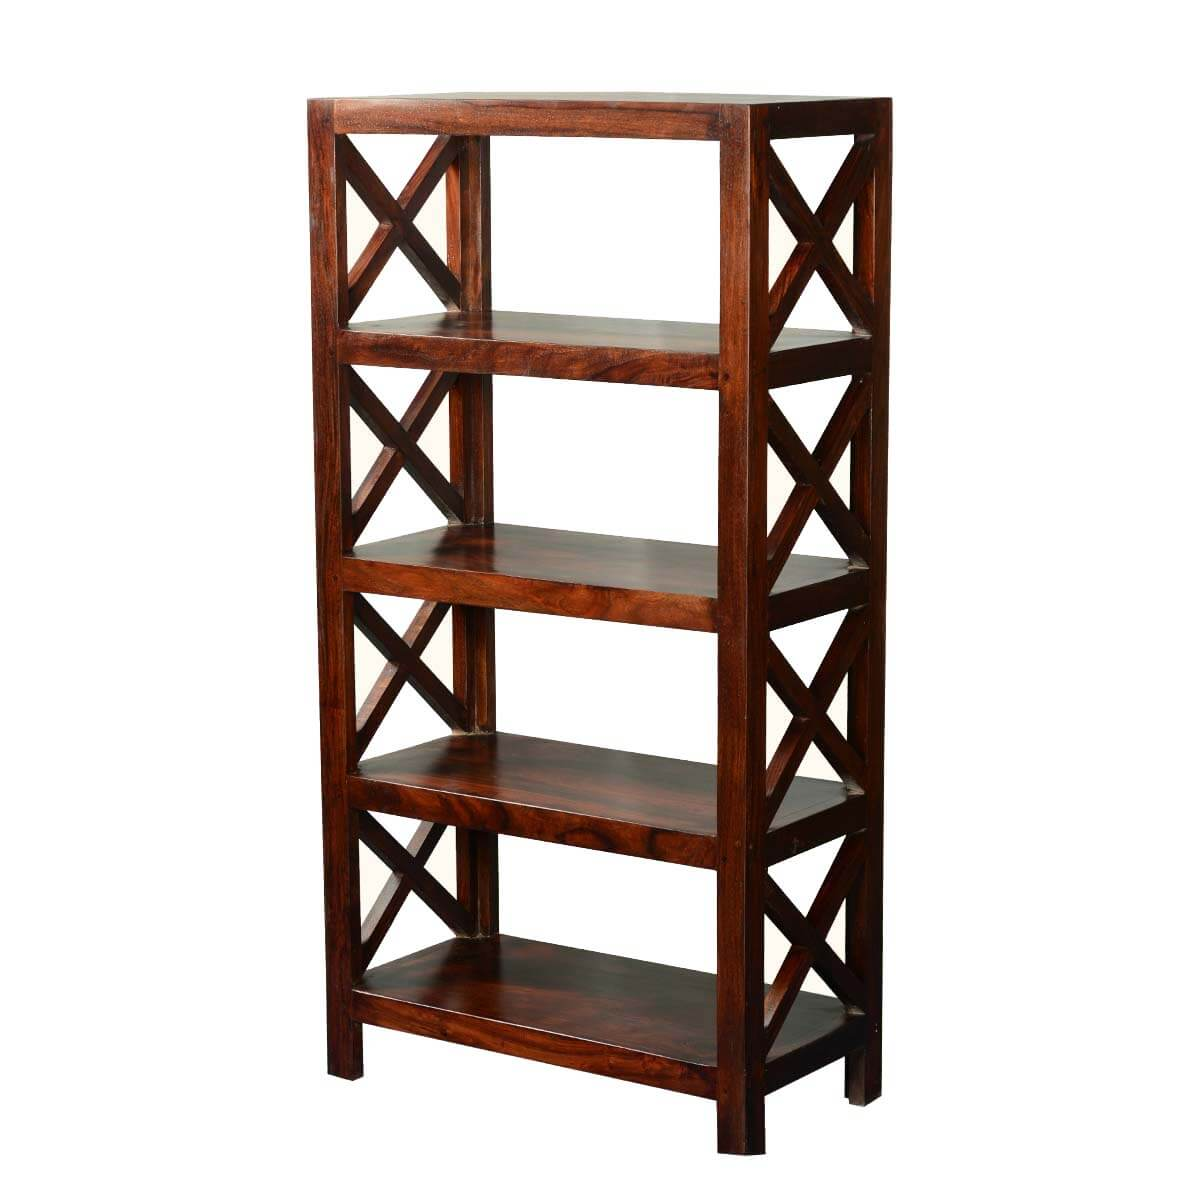 Timber Bookcase: Double X Solid Acacia Wood 4-Shelf Bookcase